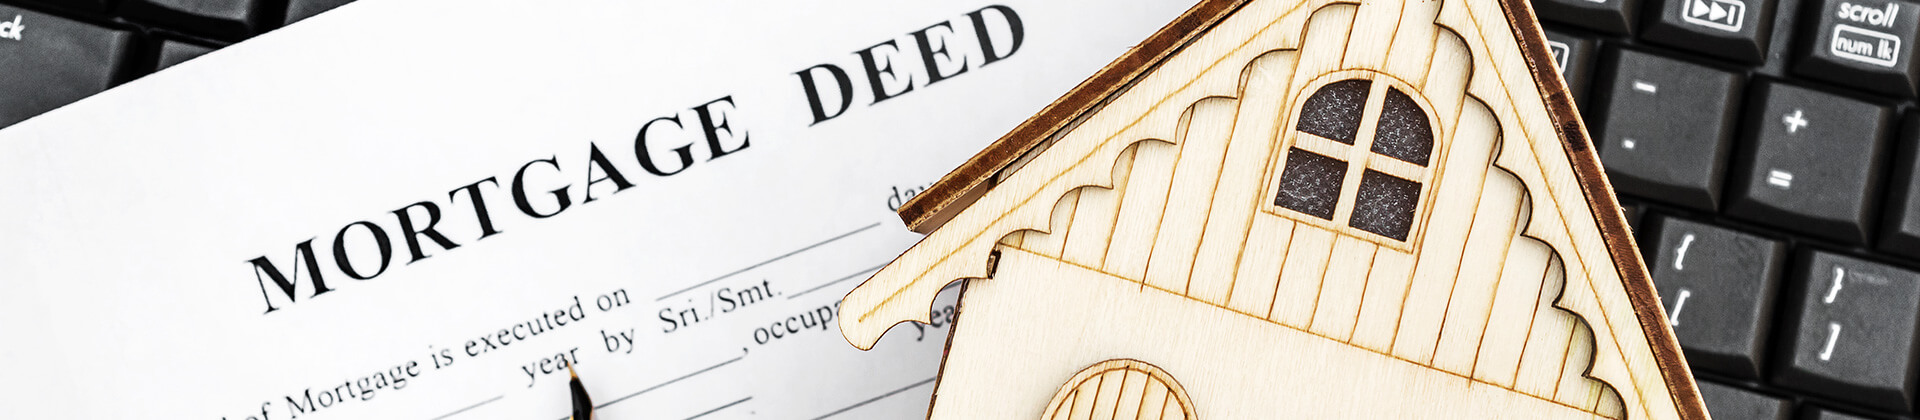 Mortgage deed paperwork